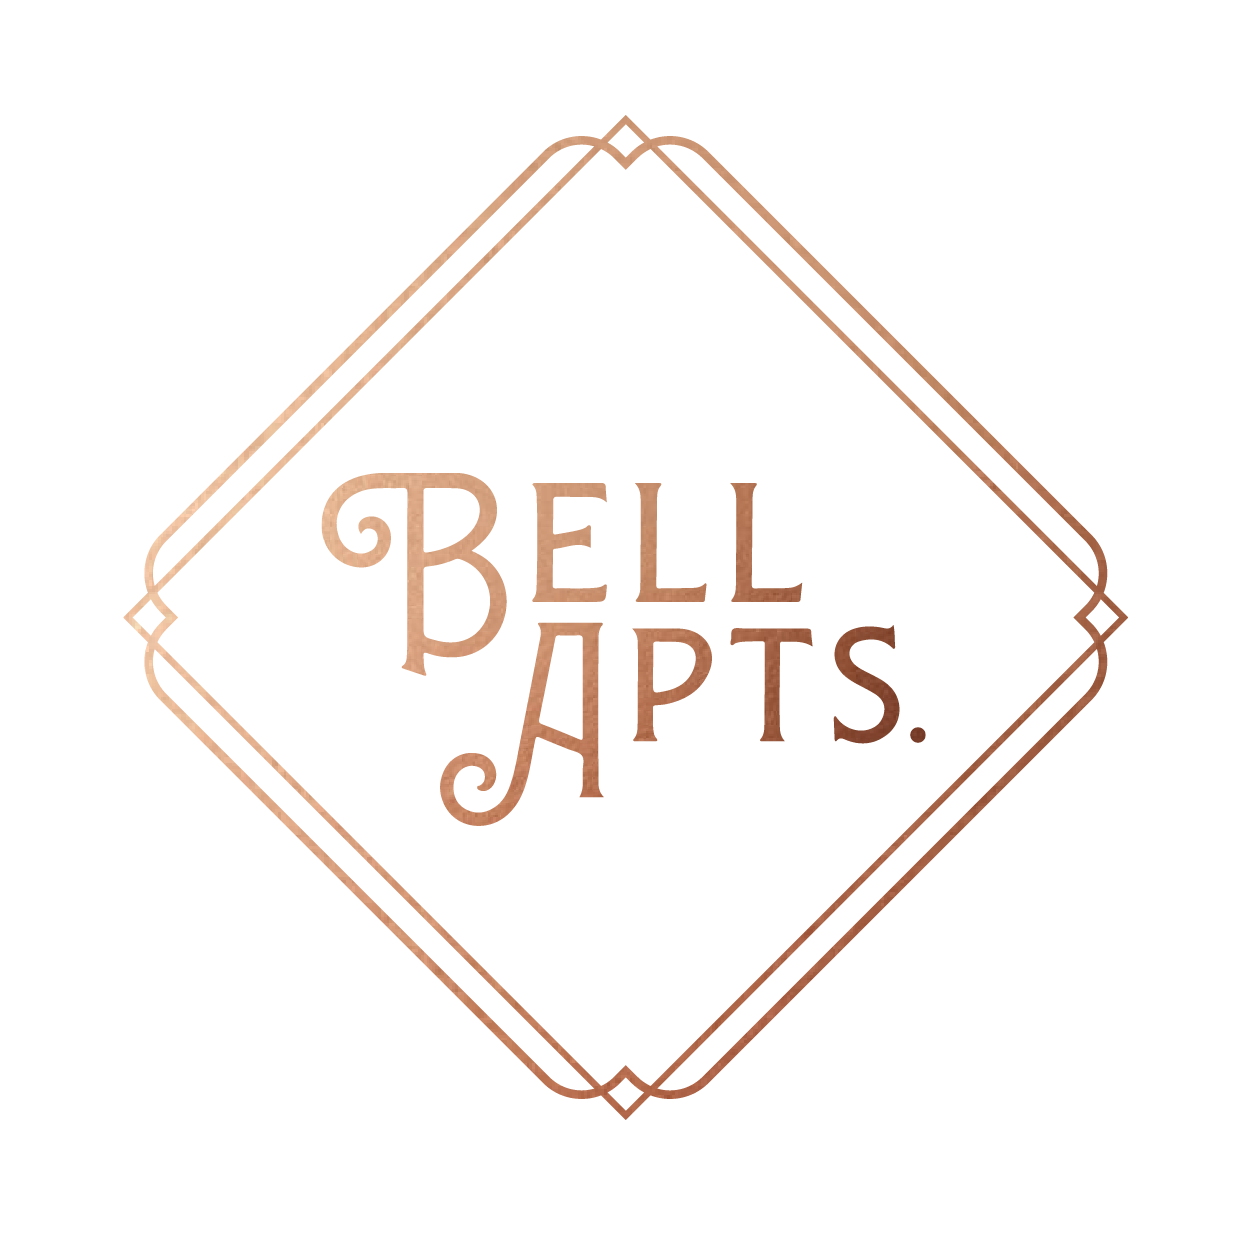 LOGO_BELL-10.png